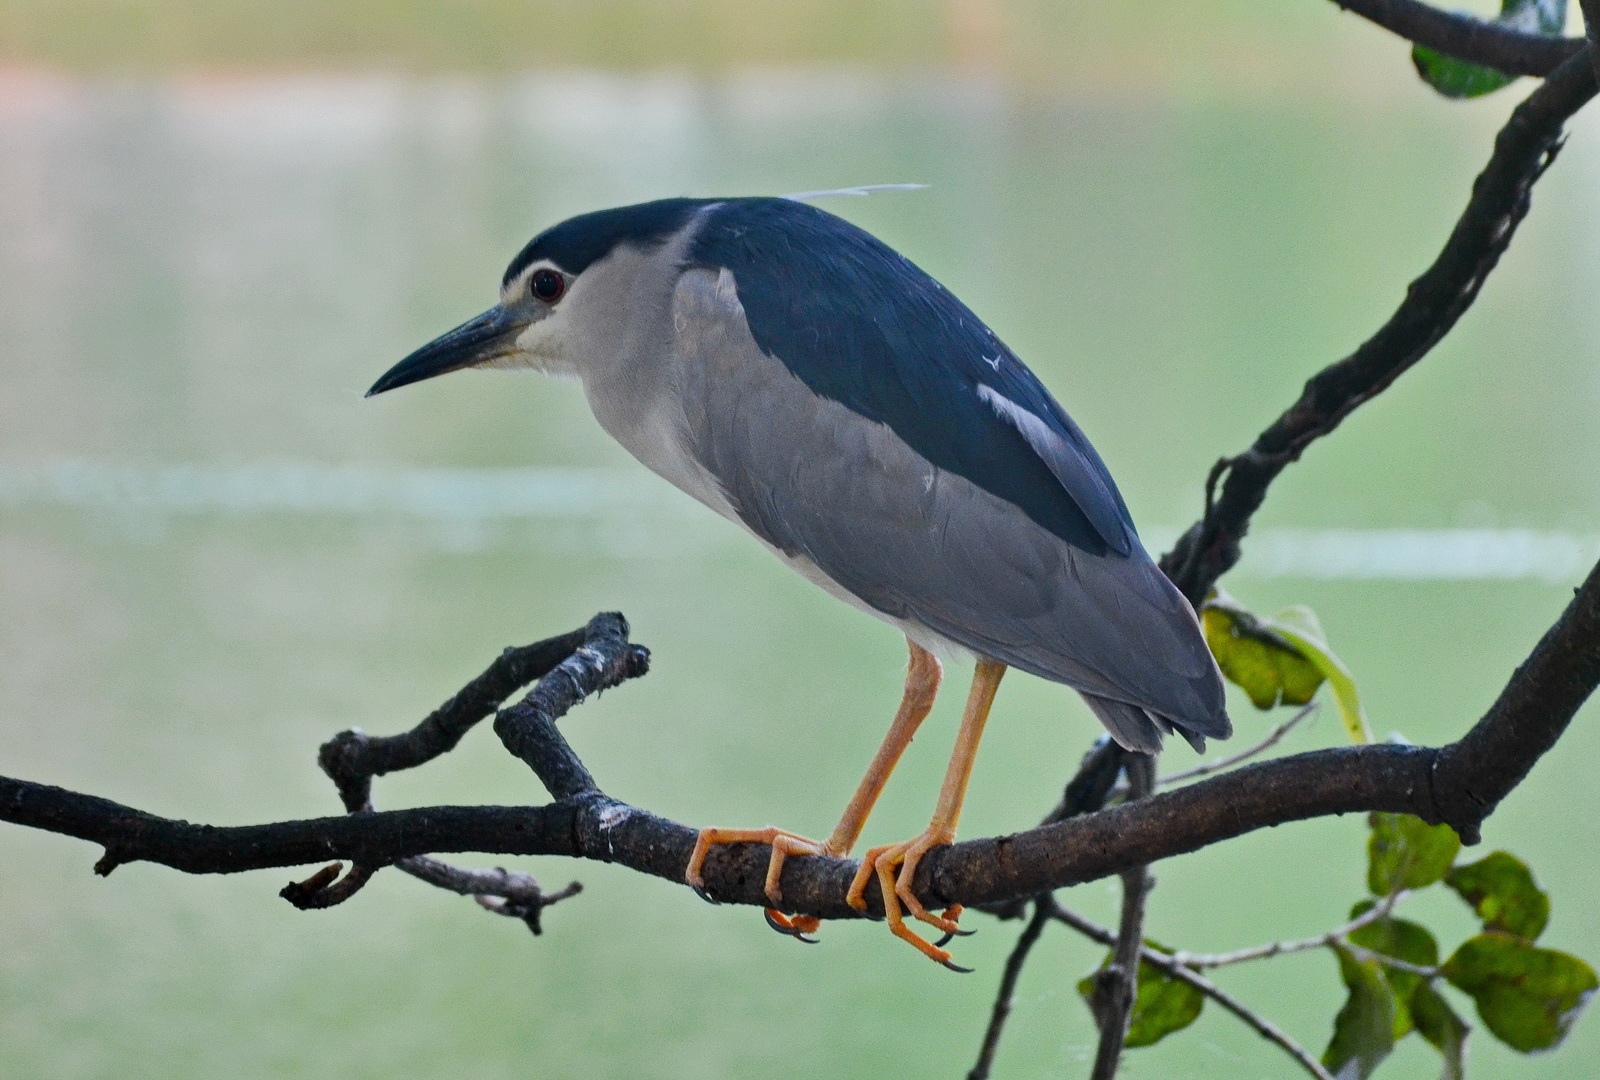 Sri Lanka. Black-capped night heron by Kandy Lake.